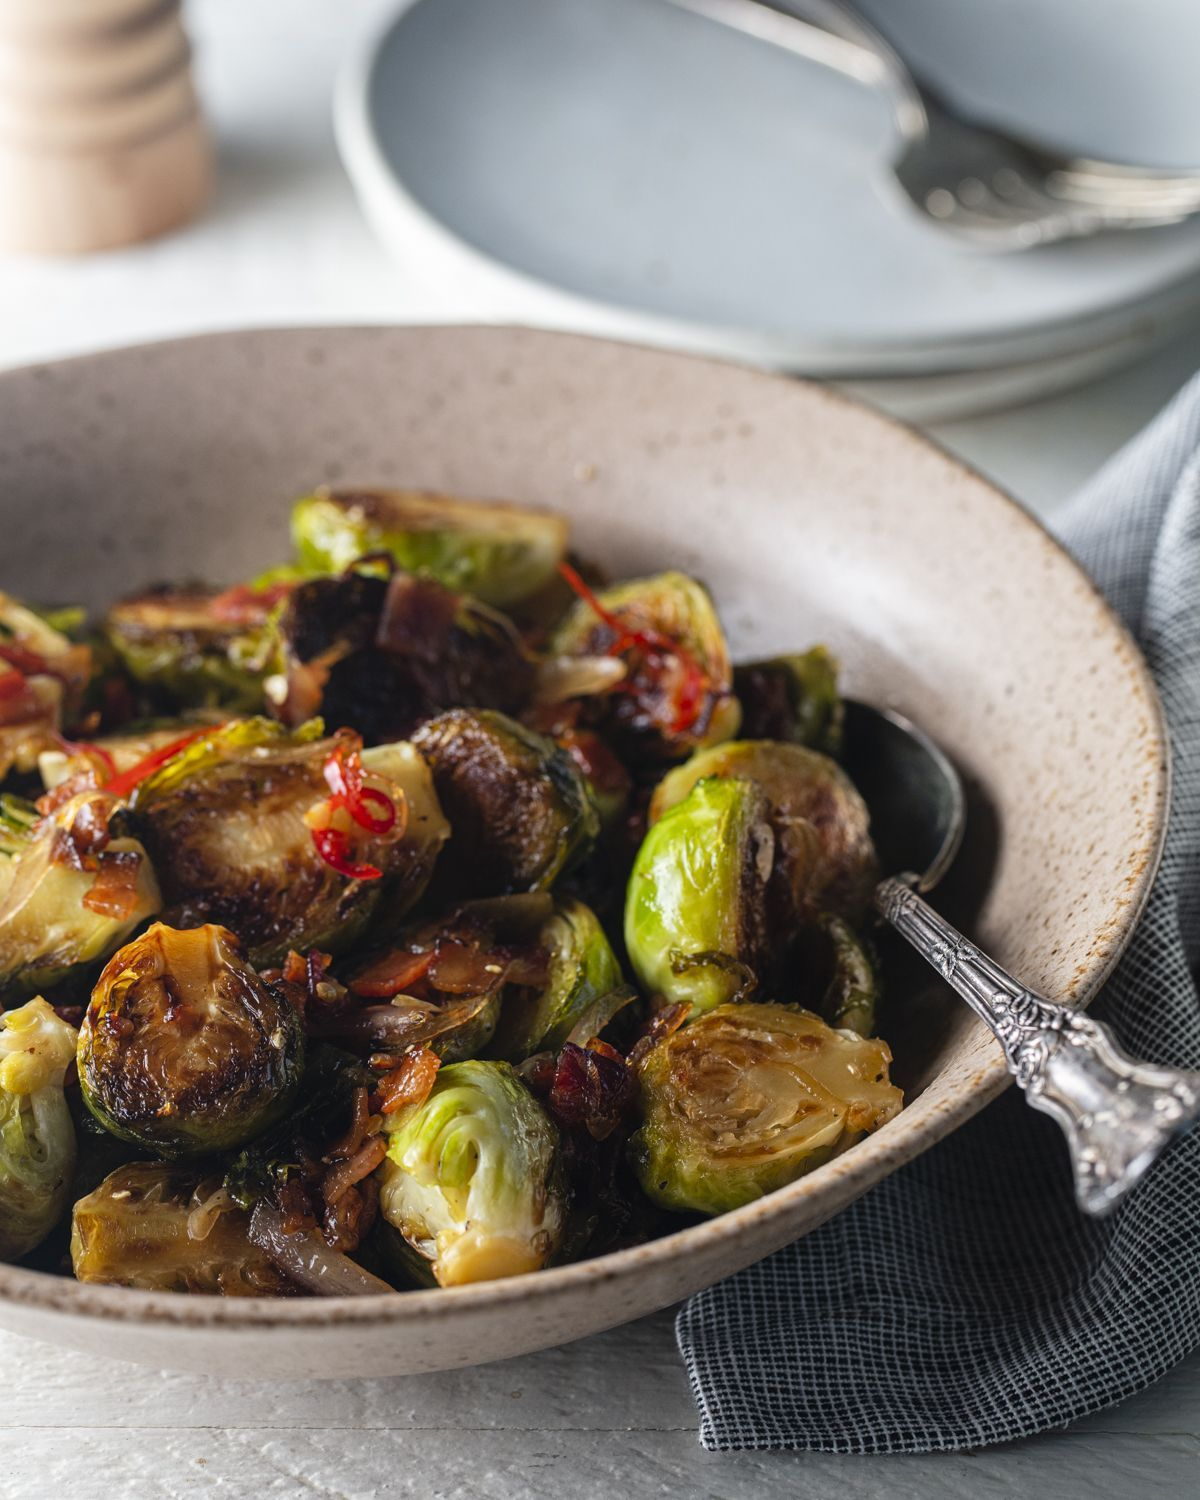 Brussels Sprouts & Bacon Jam #buffalobrusselsprouts Brussels Sprouts & Bacon Jam #buffalobrusselsprouts Brussels Sprouts & Bacon Jam #buffalobrusselsprouts Brussels Sprouts & Bacon Jam #buffalobrusselsprouts